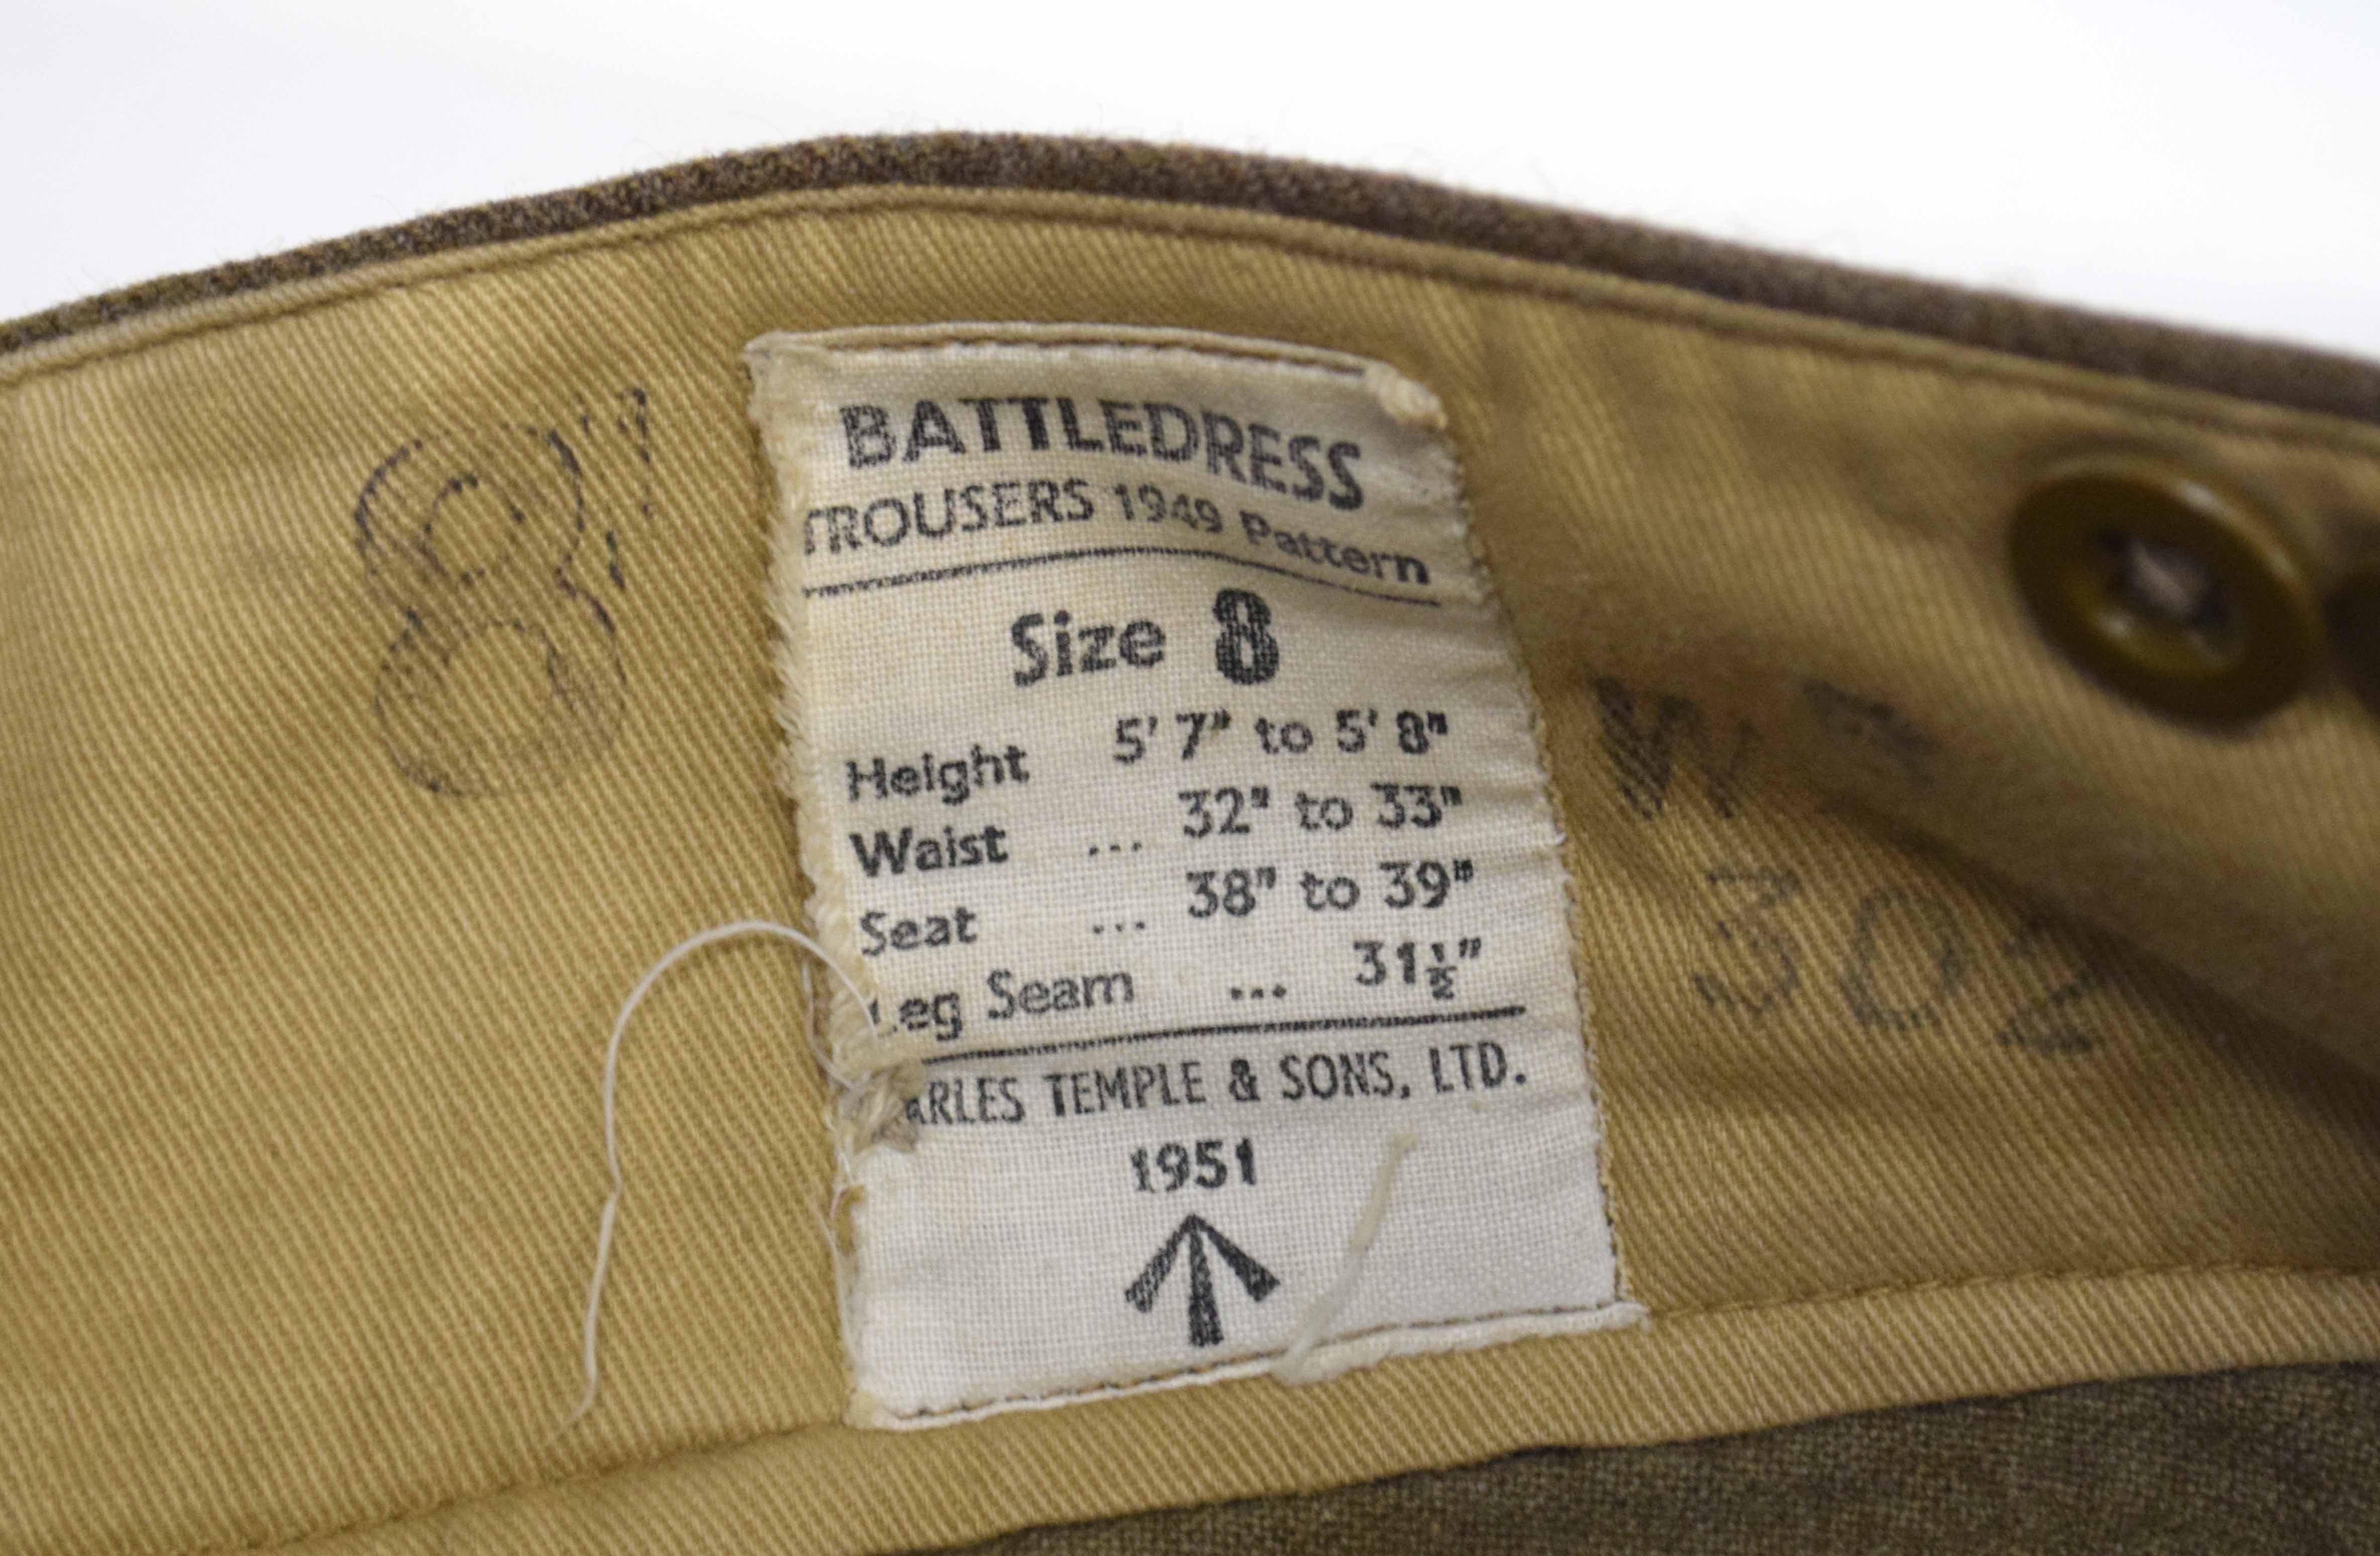 Set of battle dress 1949 pattern to include blouse dated 1952, size 8, badged up to 11th Armoured - Image 4 of 4